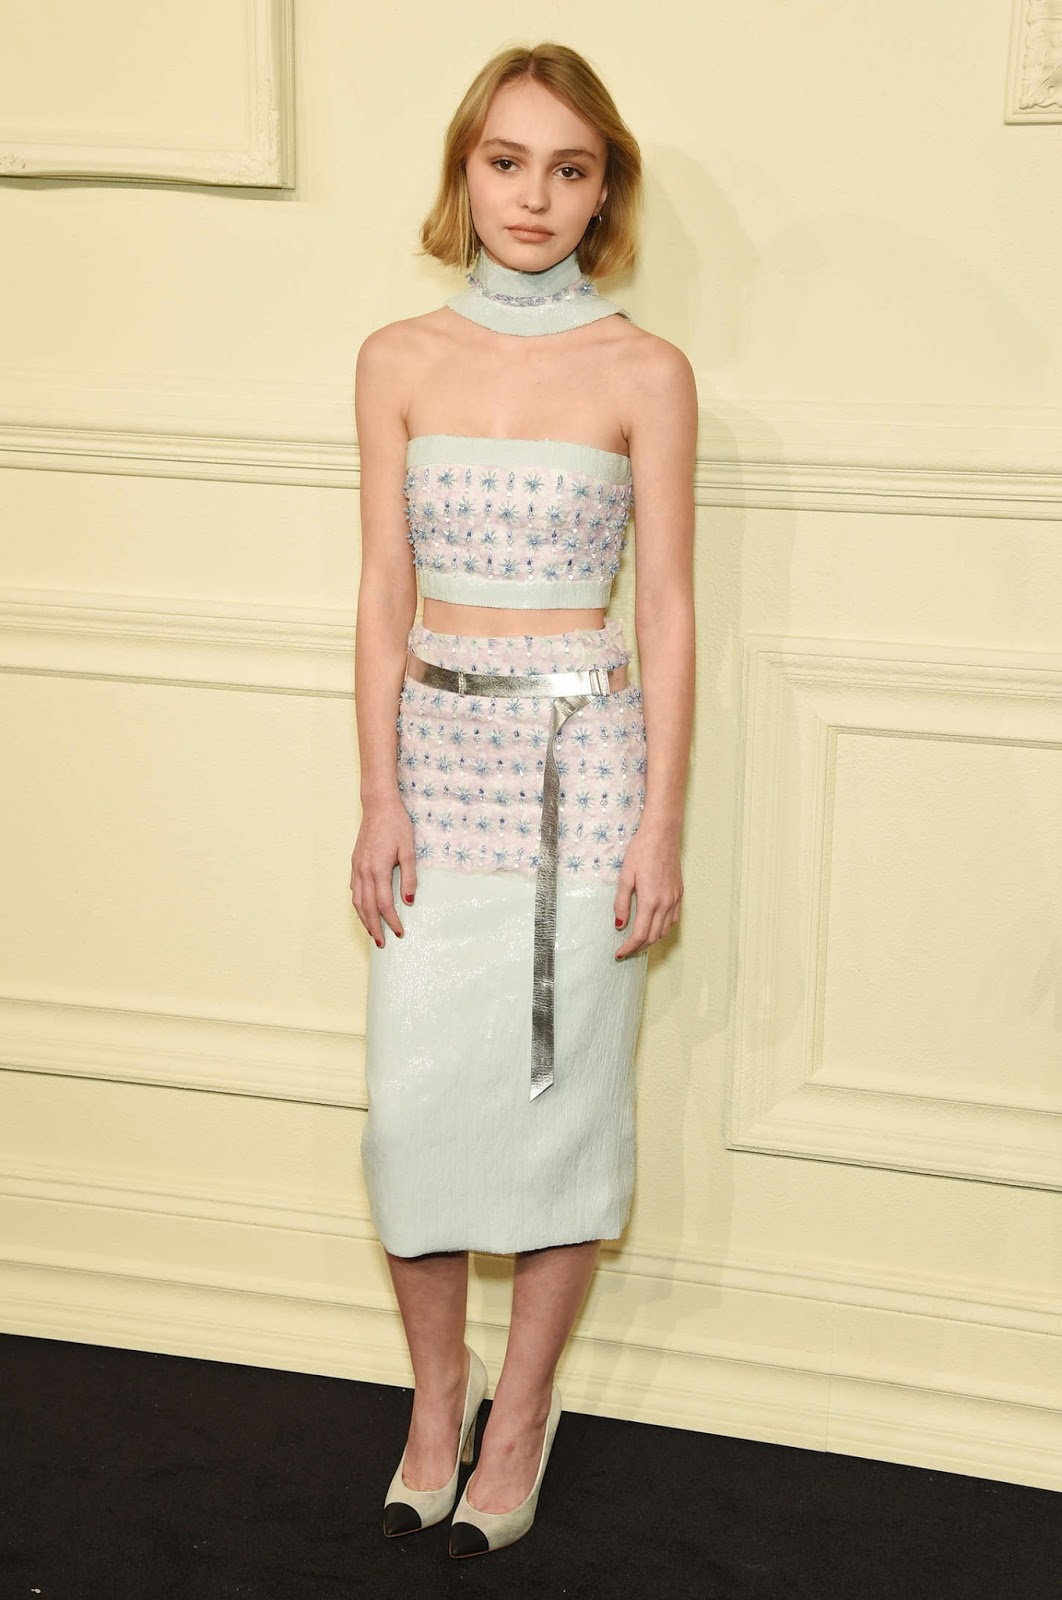 Lily-Rose Depp in a cropped top and skirt at the Chanel Paris Salzburg Metiers d'Art Show in NYC